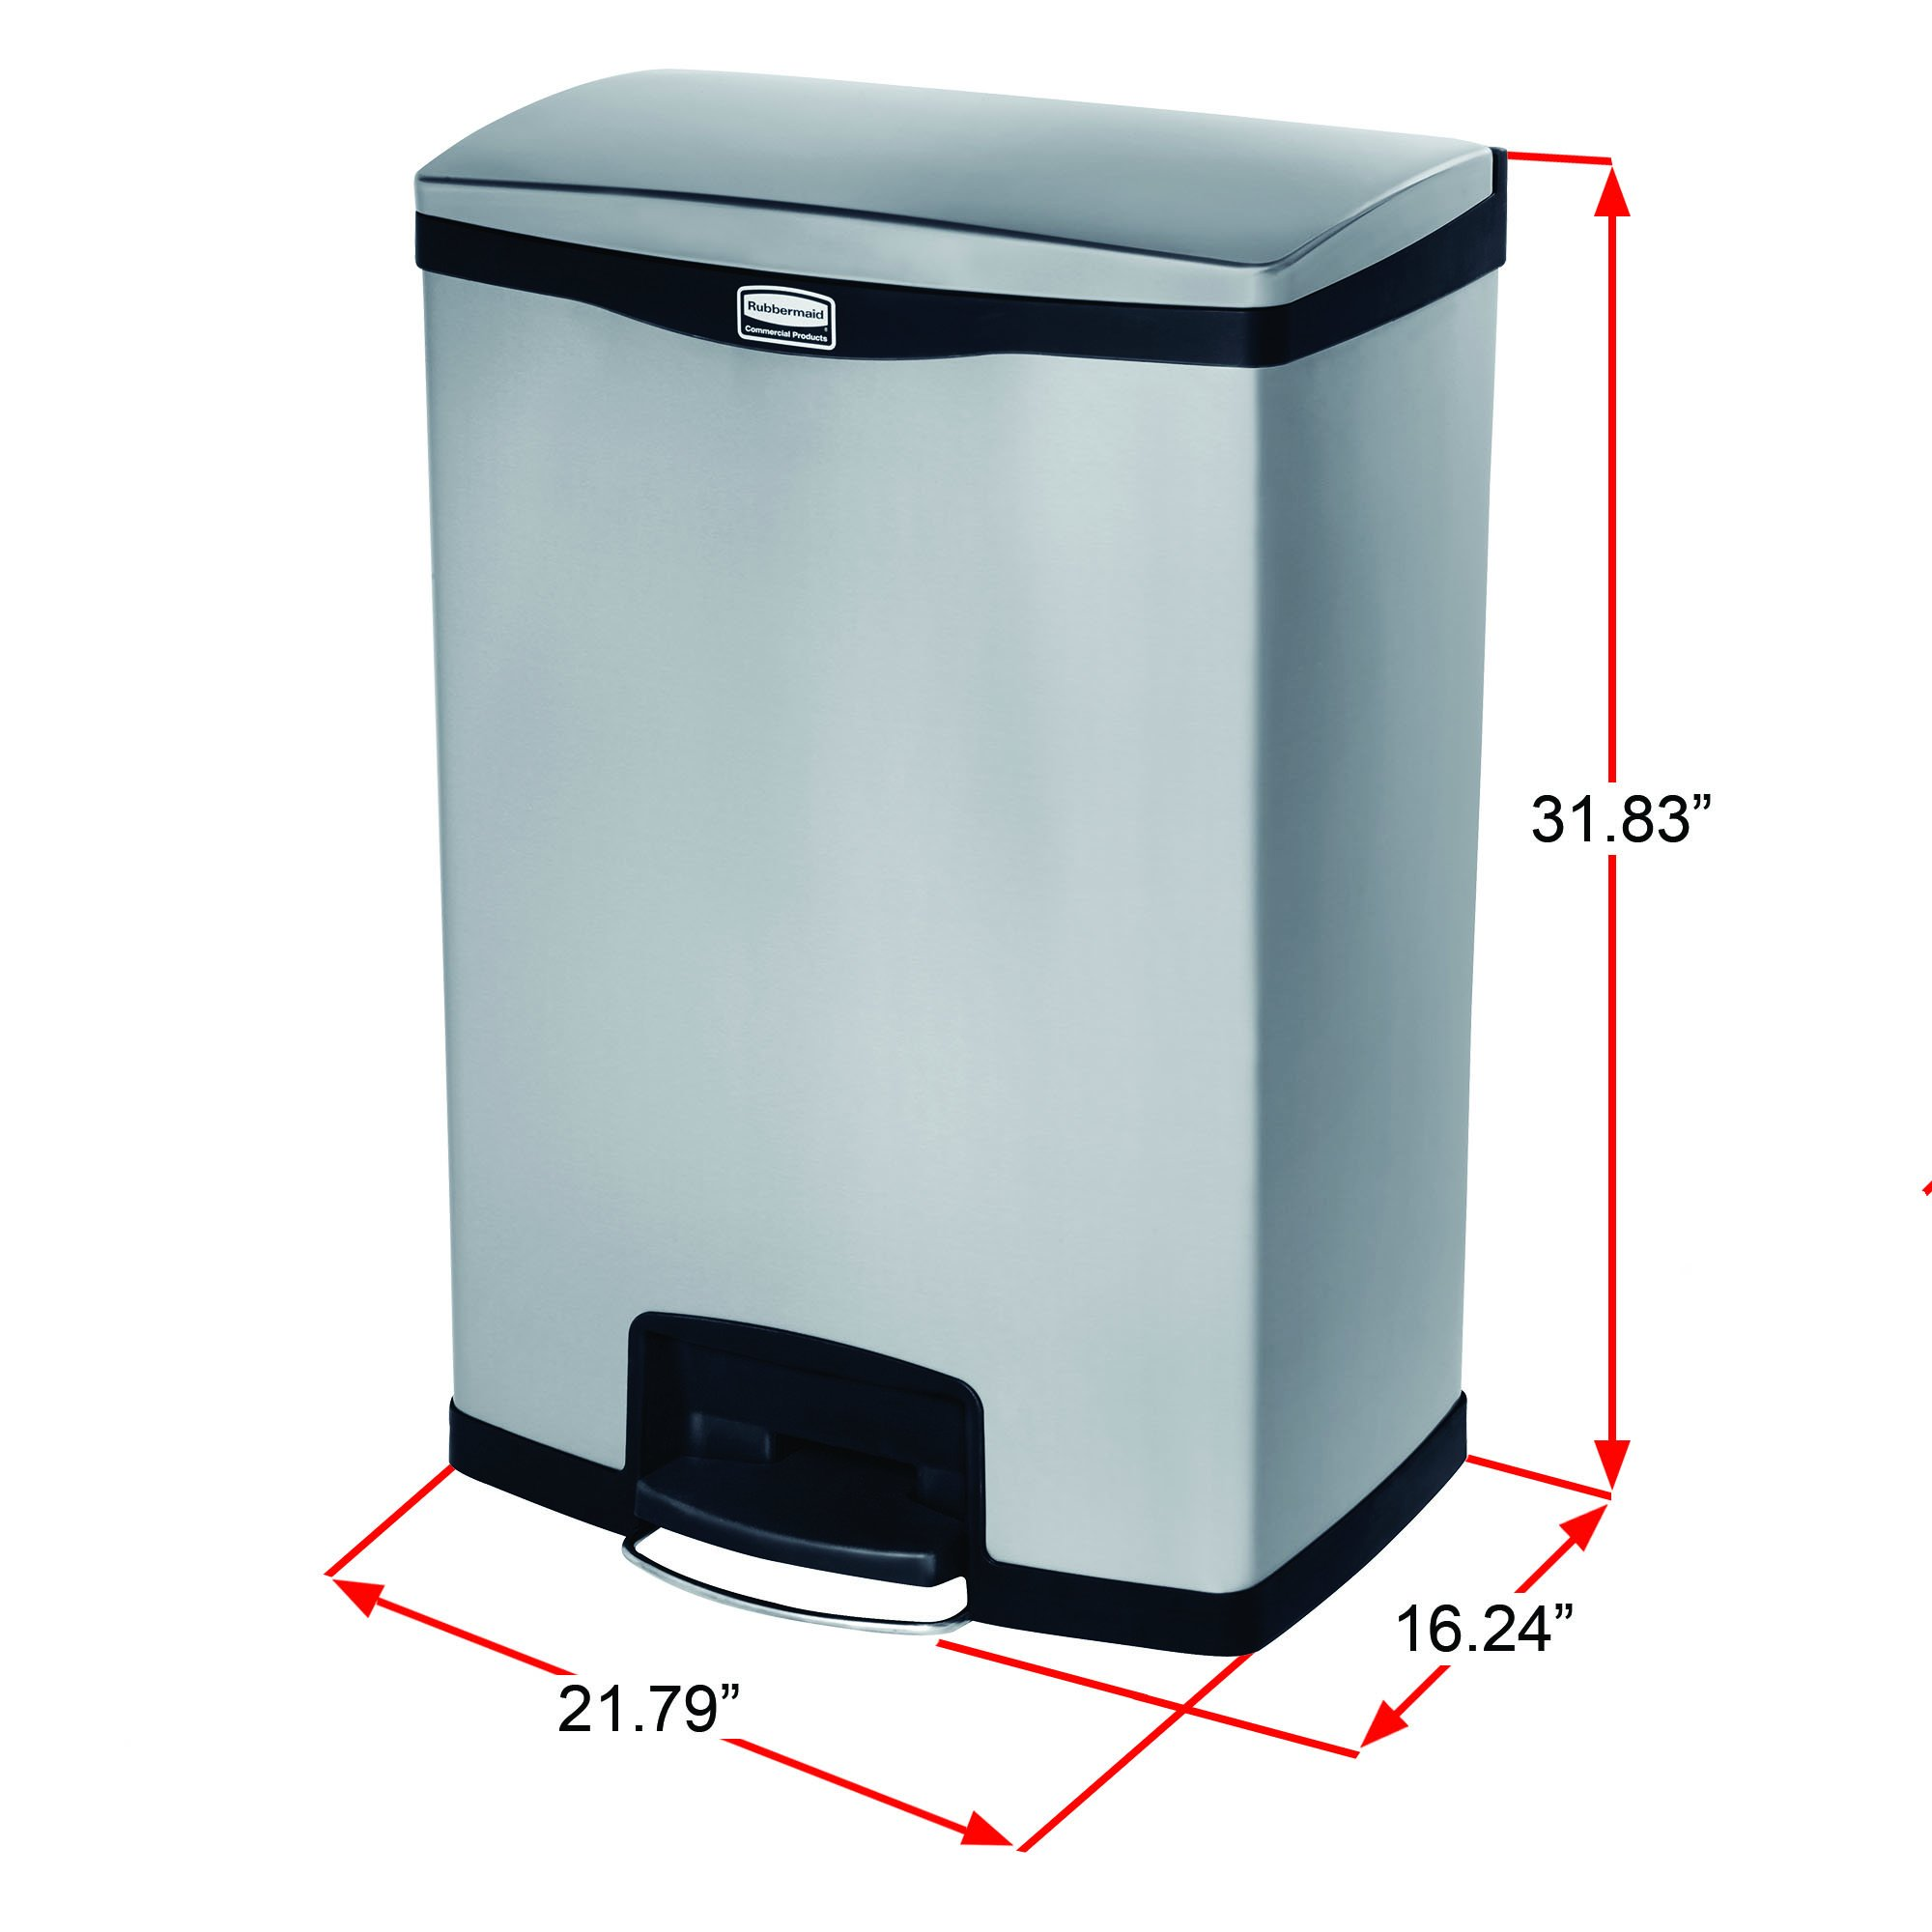 Rubbermaid Commercial Slim Jim Stainless Steel Front Step-On Wastebasket, 24-gallon, Red (1901988) by Rubbermaid Commercial Products (Image #4)